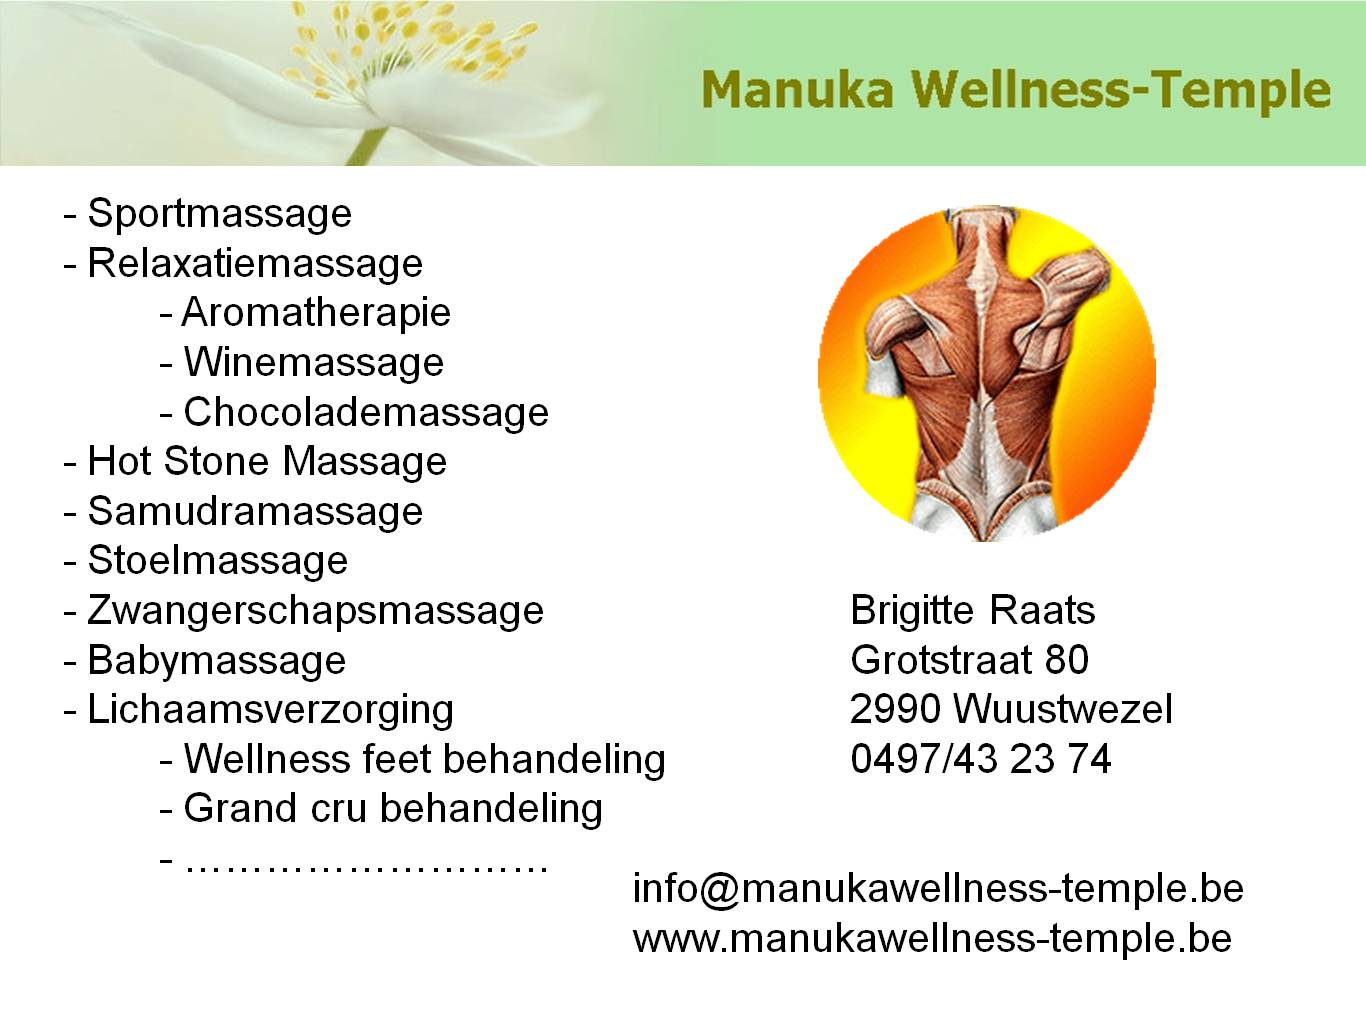 Manuka Wellness-Temple